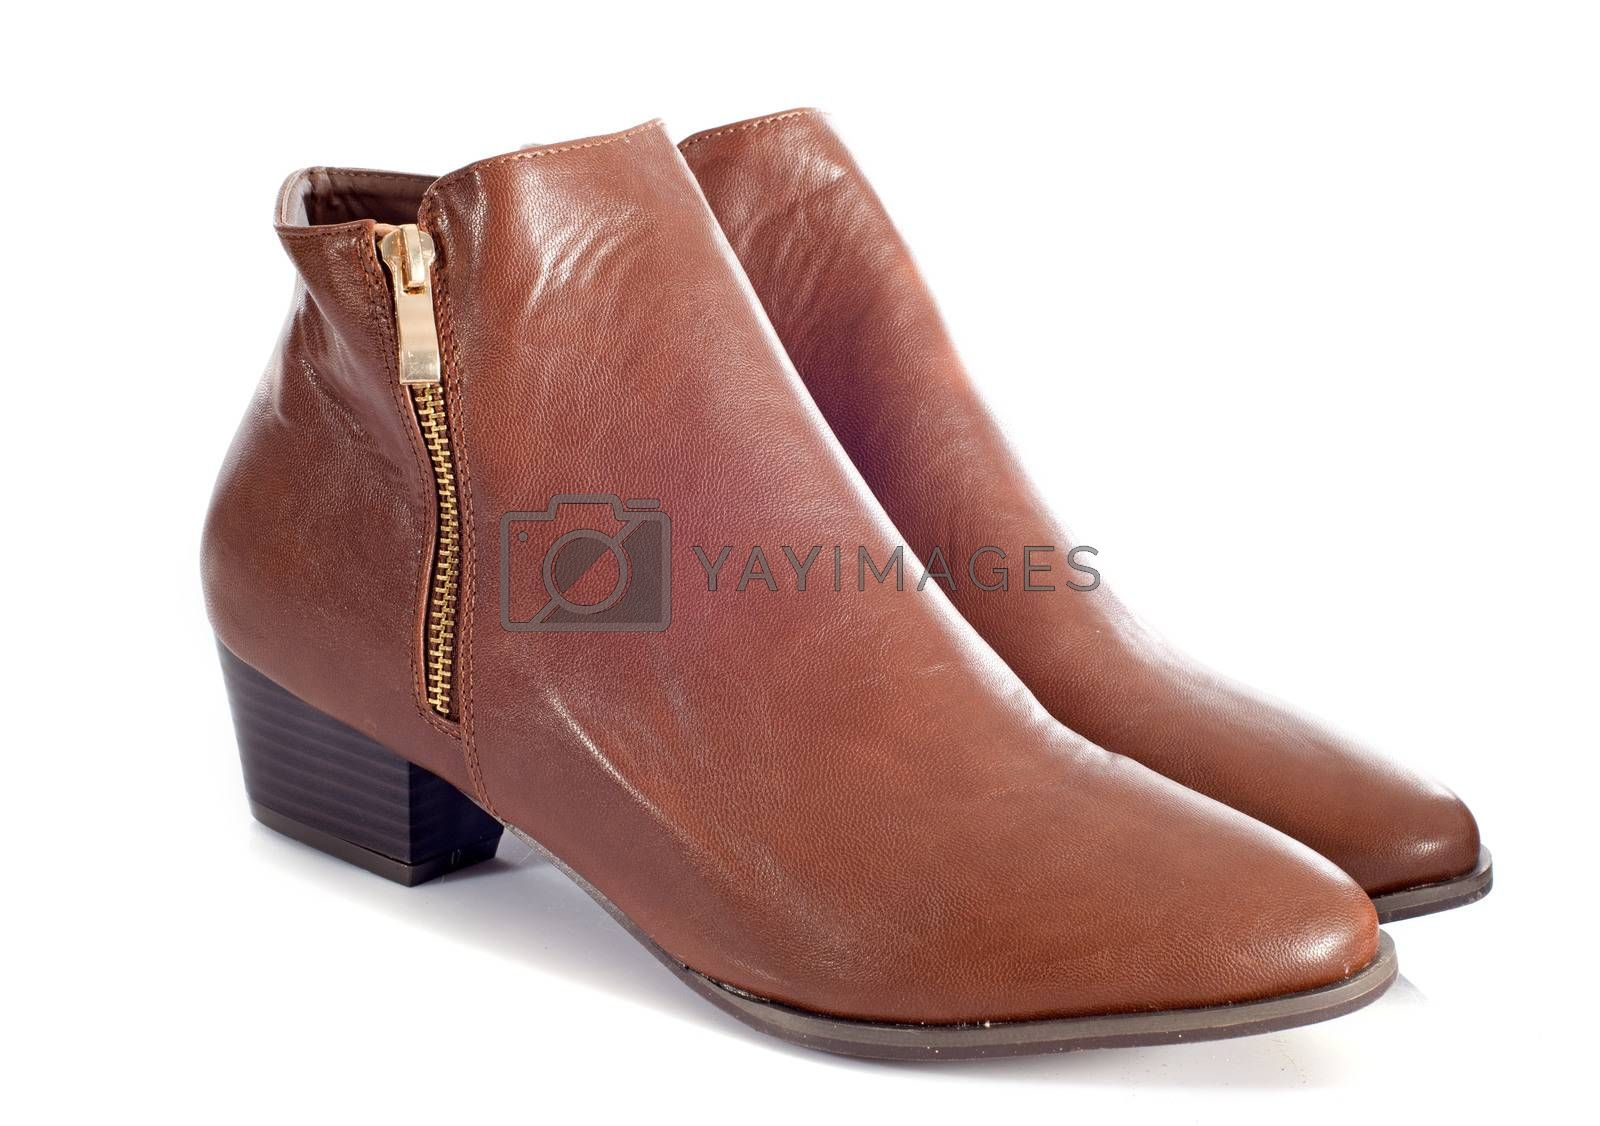 Royalty free image of ankle boots by cynoclub